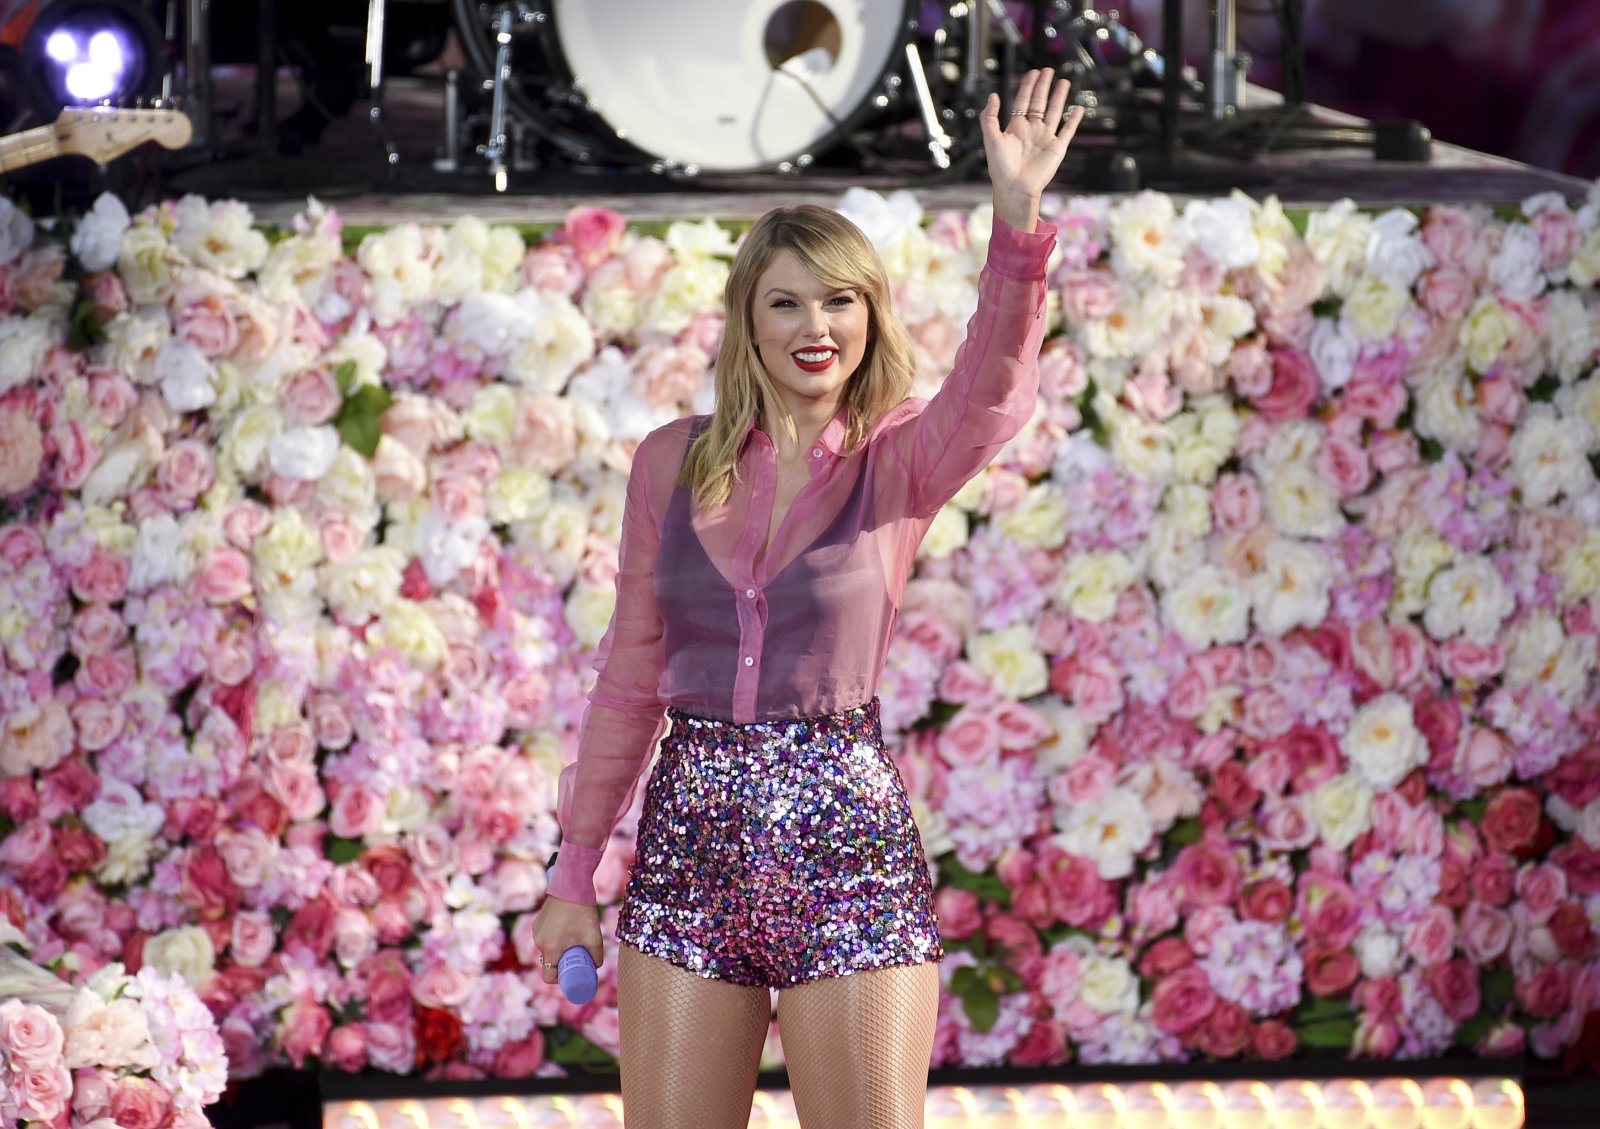 Recommended Reading: Taylor Swift and Spotify are... best friends? | DeviceDaily.com